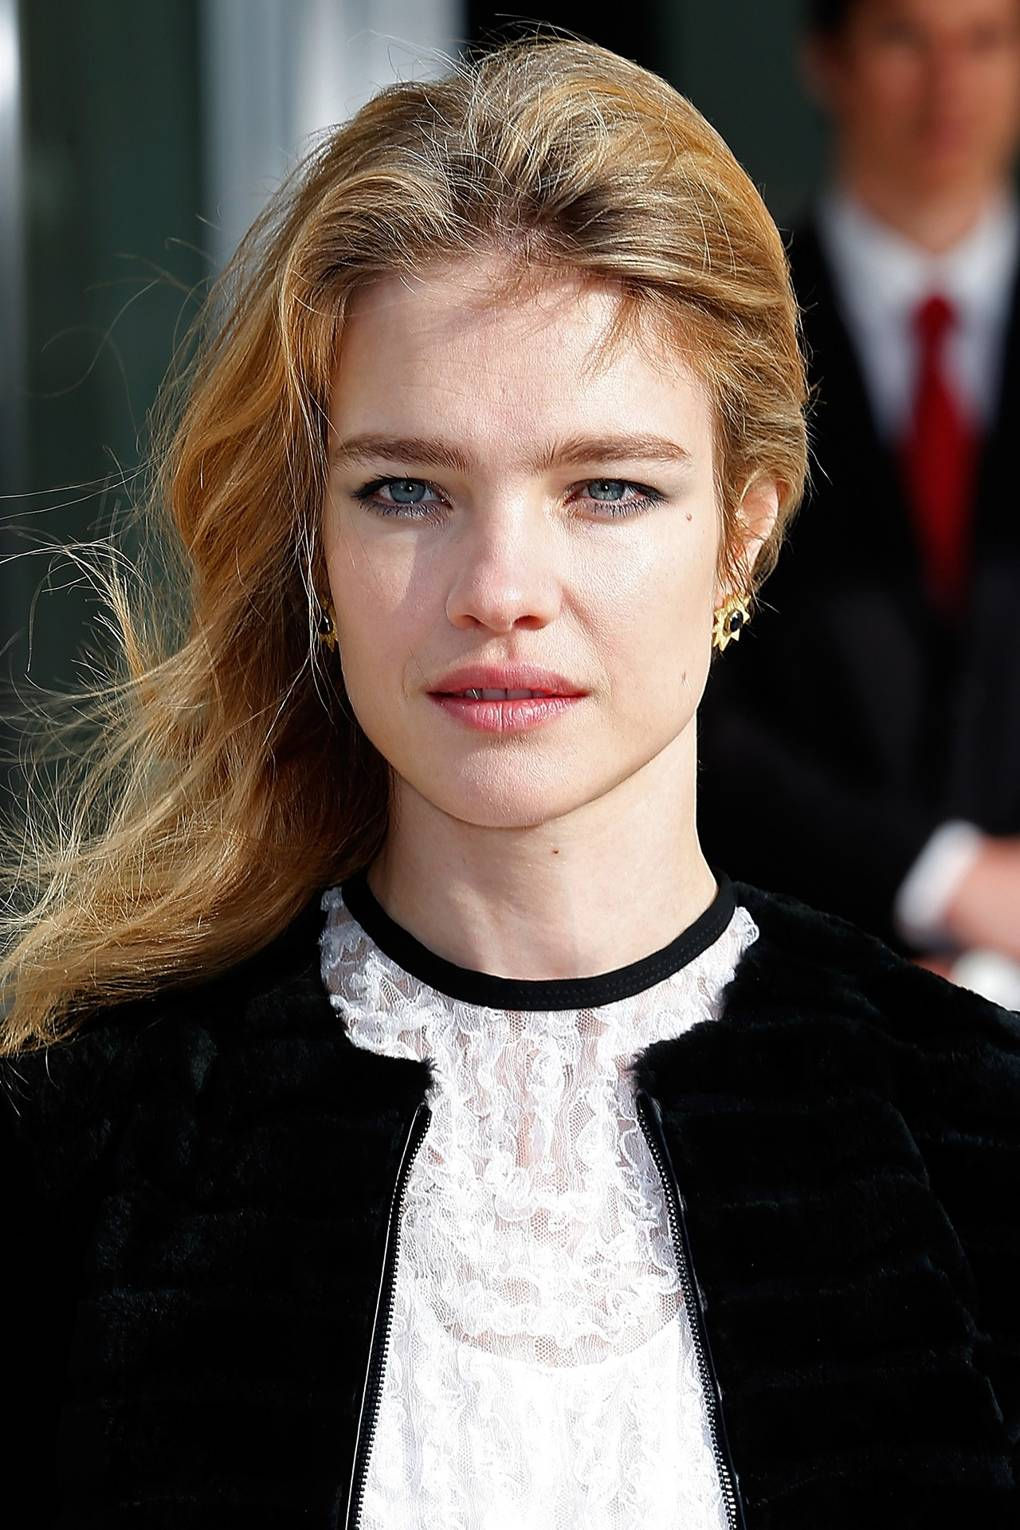 Fotos Natalia Vodianova nudes (48 foto and video), Tits, Is a cute, Boobs, bra 2015